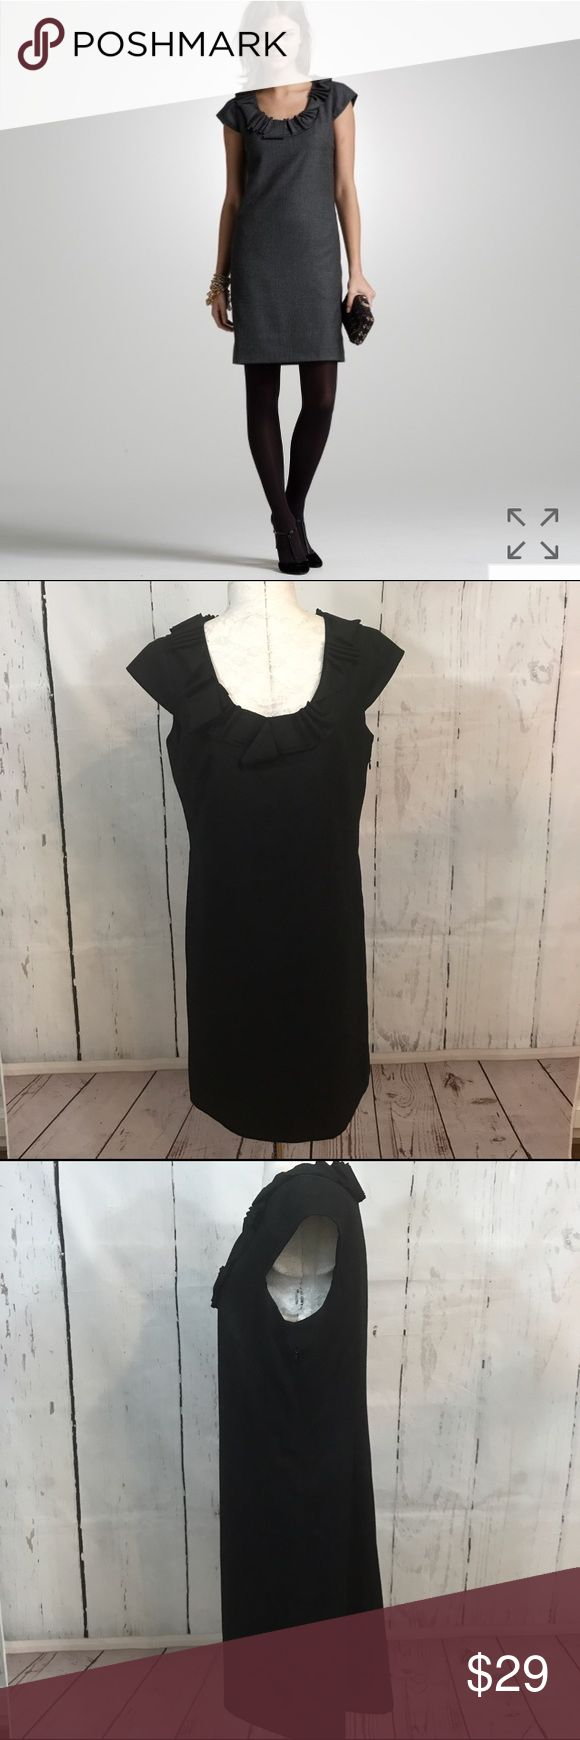 """🖤🖤 J CREW WOOL RIBBON RAVINE DRESS B32 Condition: Excellent pre owned condition Approximate measurements (laying flat): 18"""" bust 37"""" length  Item location: bin 32  ❤no trades/no modeling❤ J. Crew Dresses"""